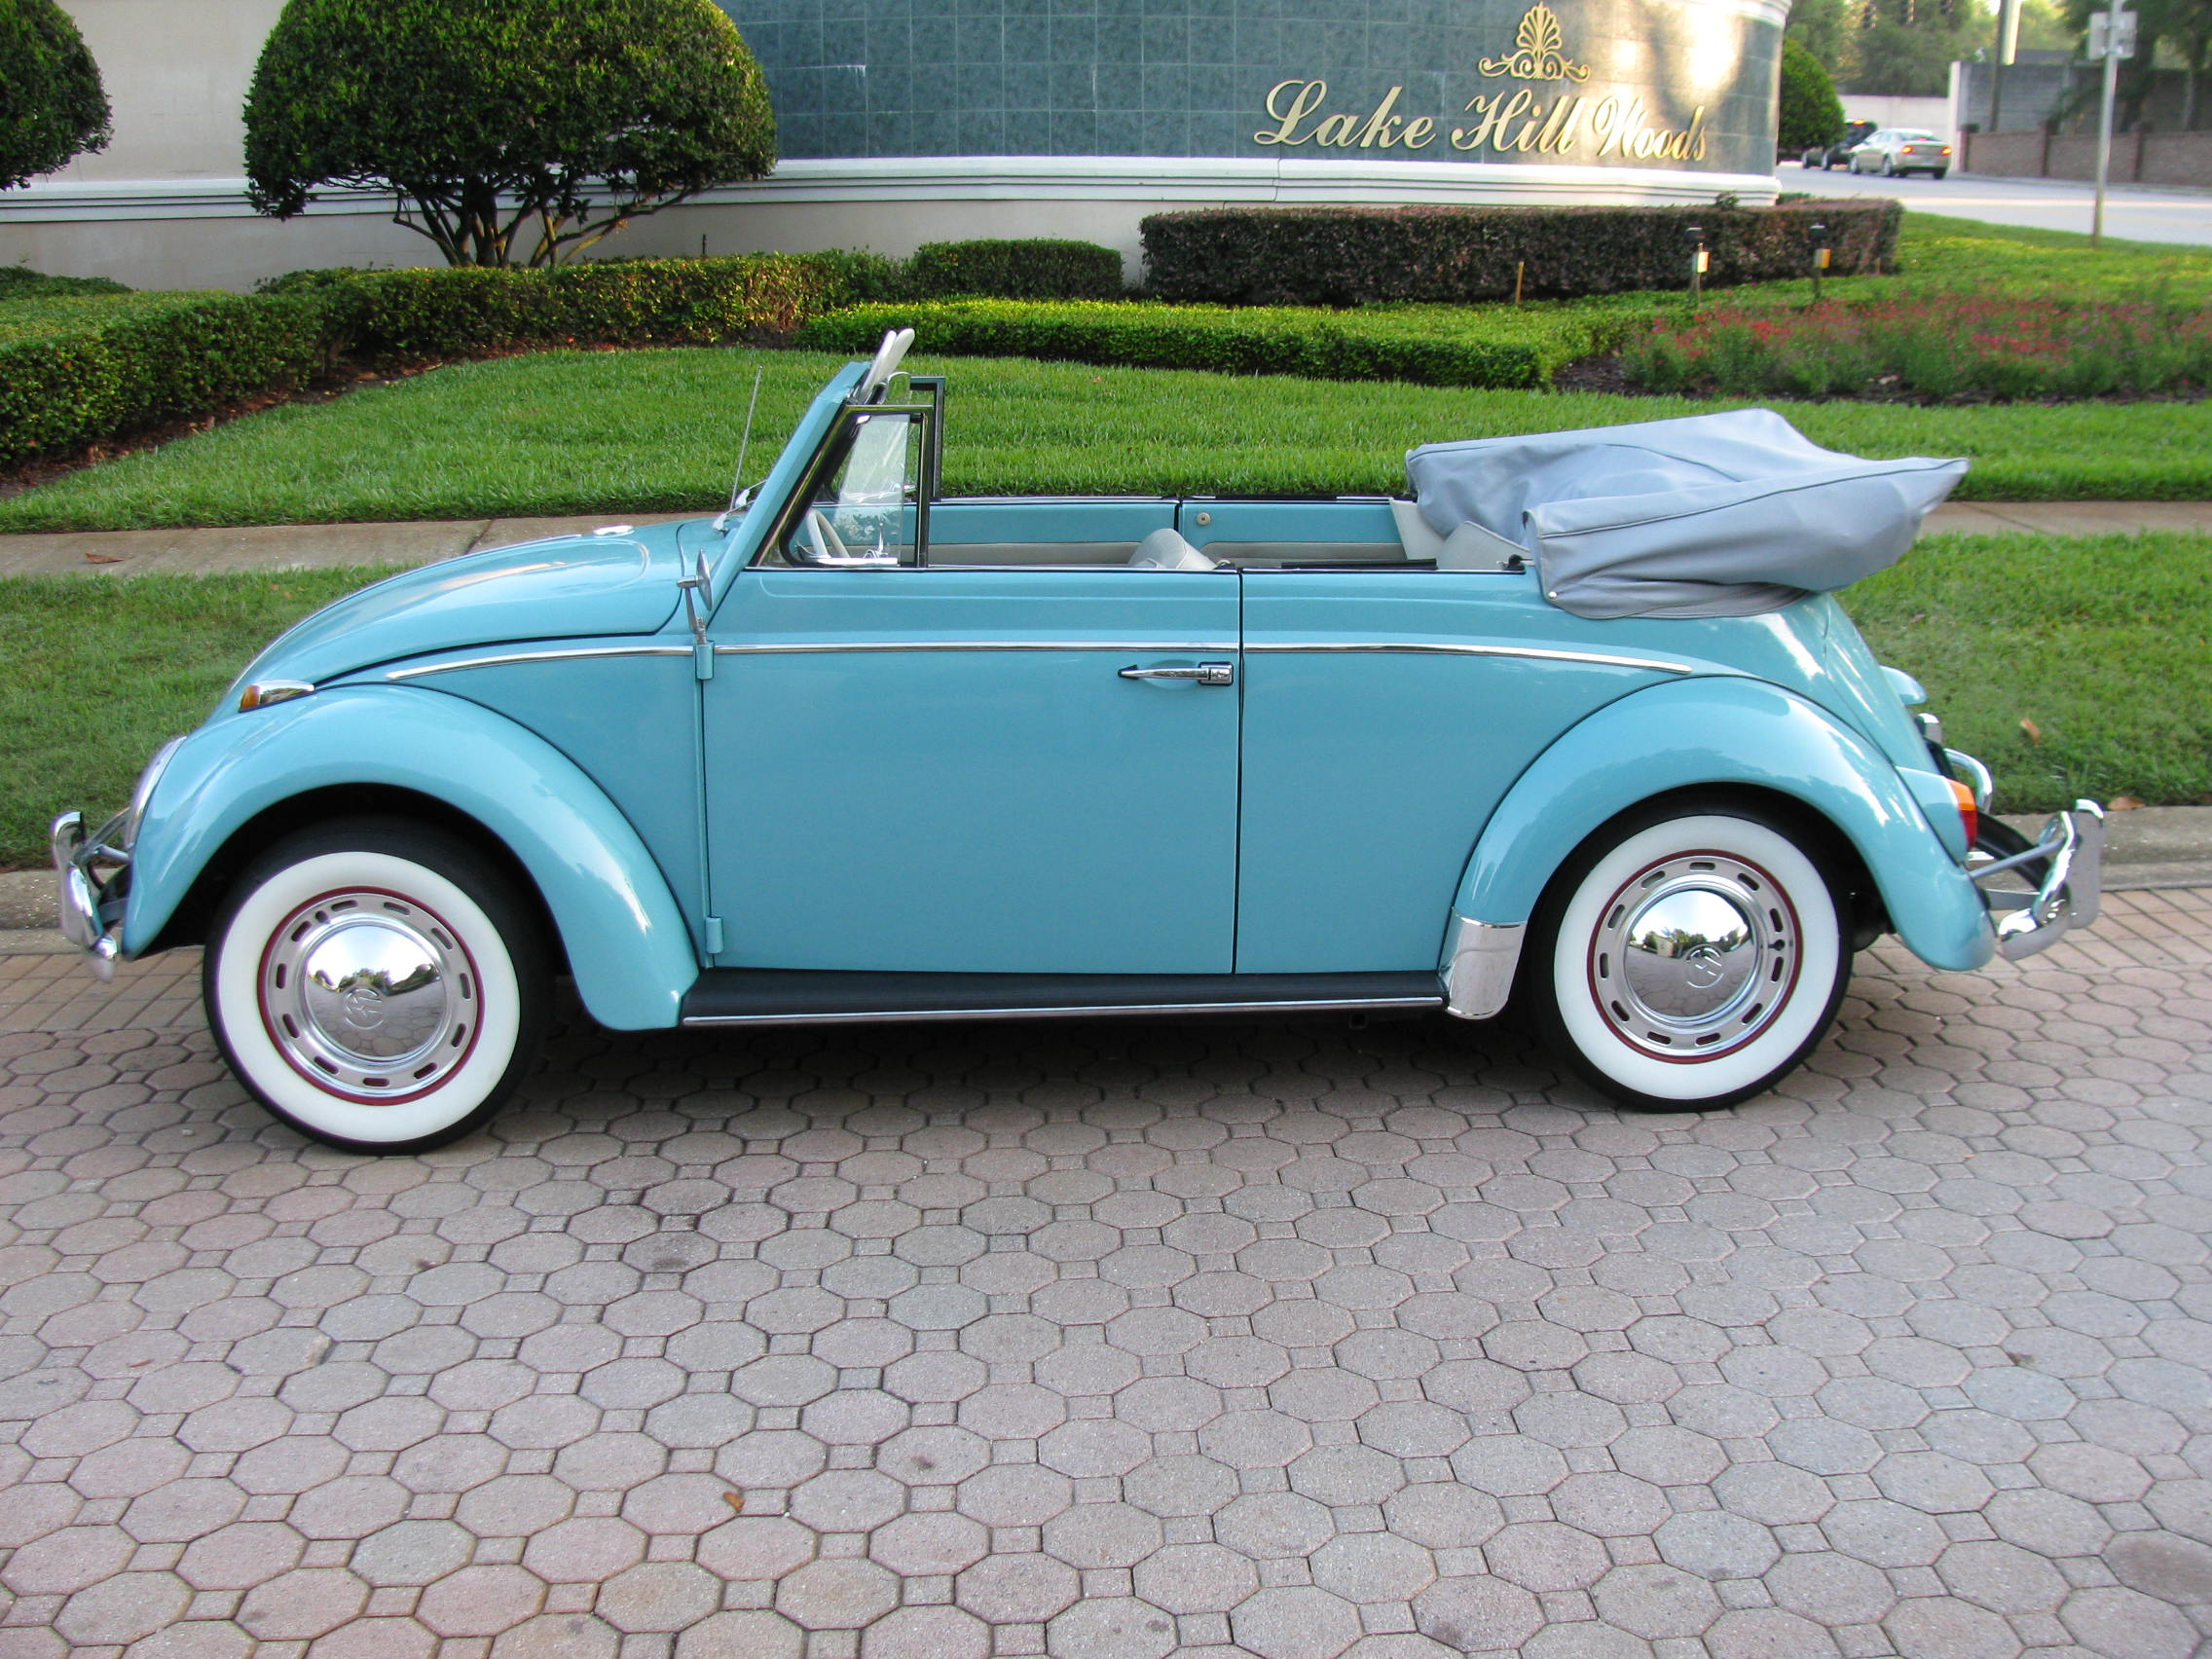 1963 volkswagen beetle convertible sold vantage sports cars vantage sports cars. Black Bedroom Furniture Sets. Home Design Ideas